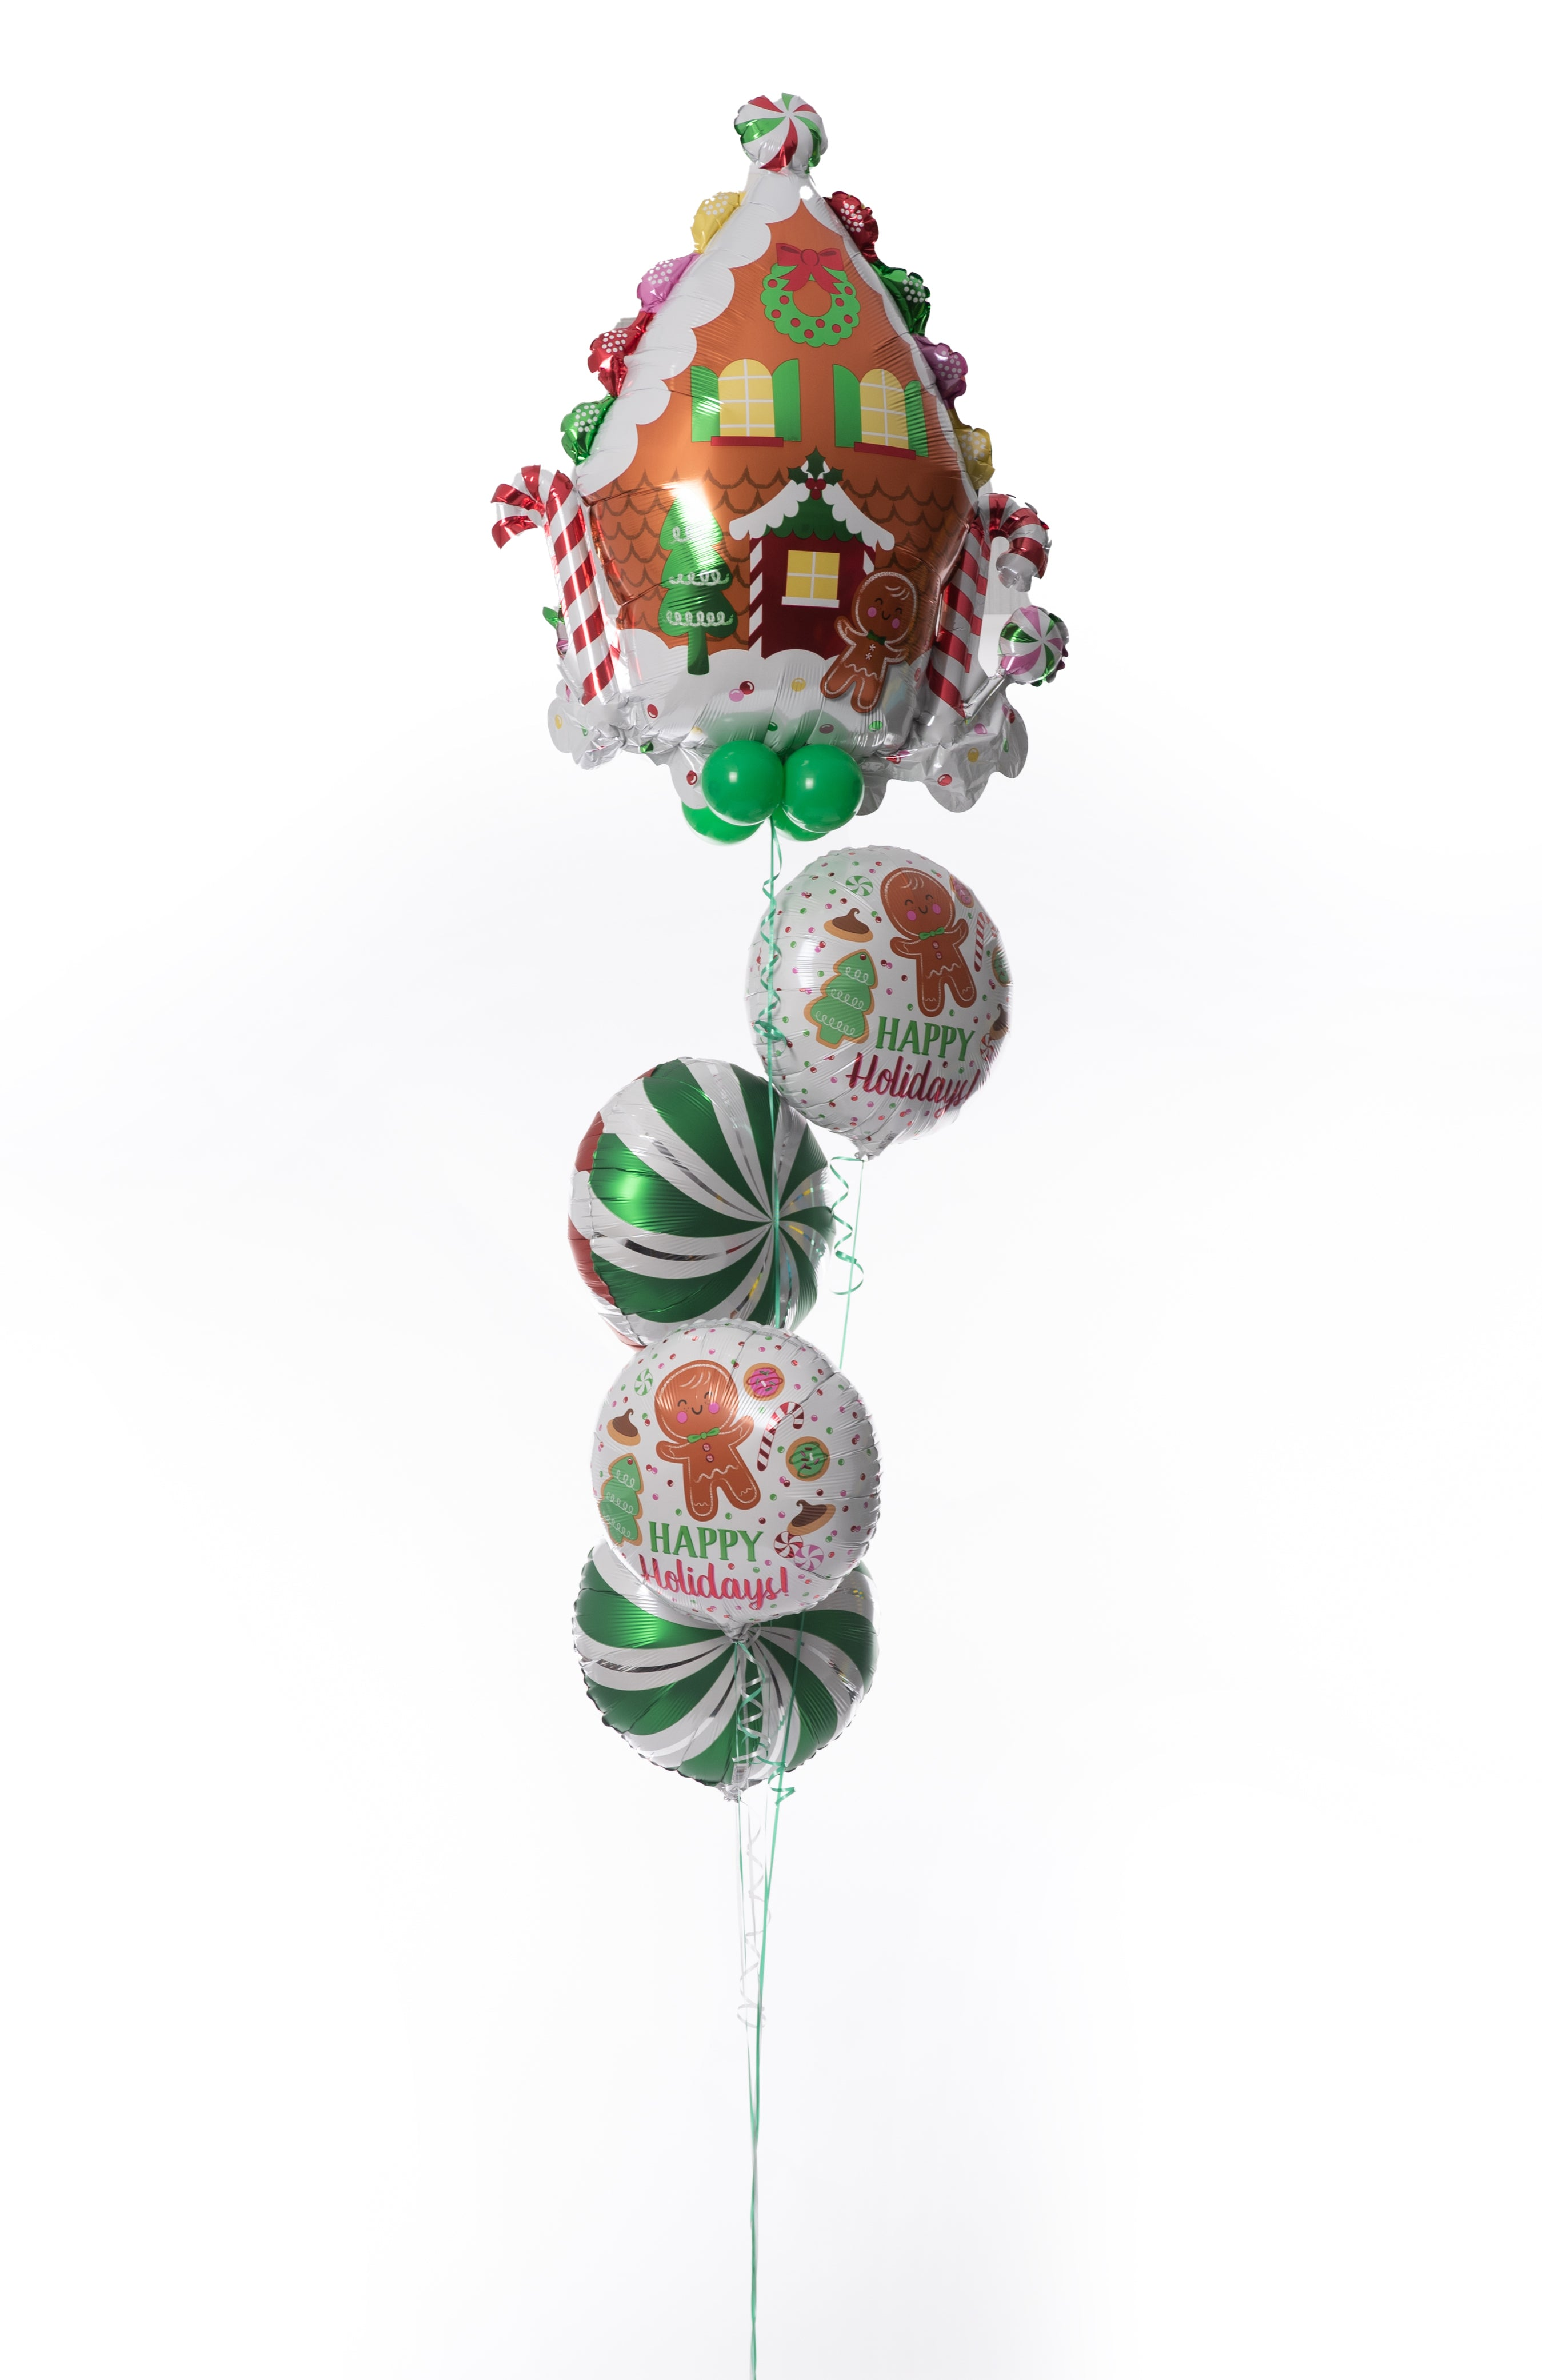 Gingerbread Cookie Balloon Bouquet